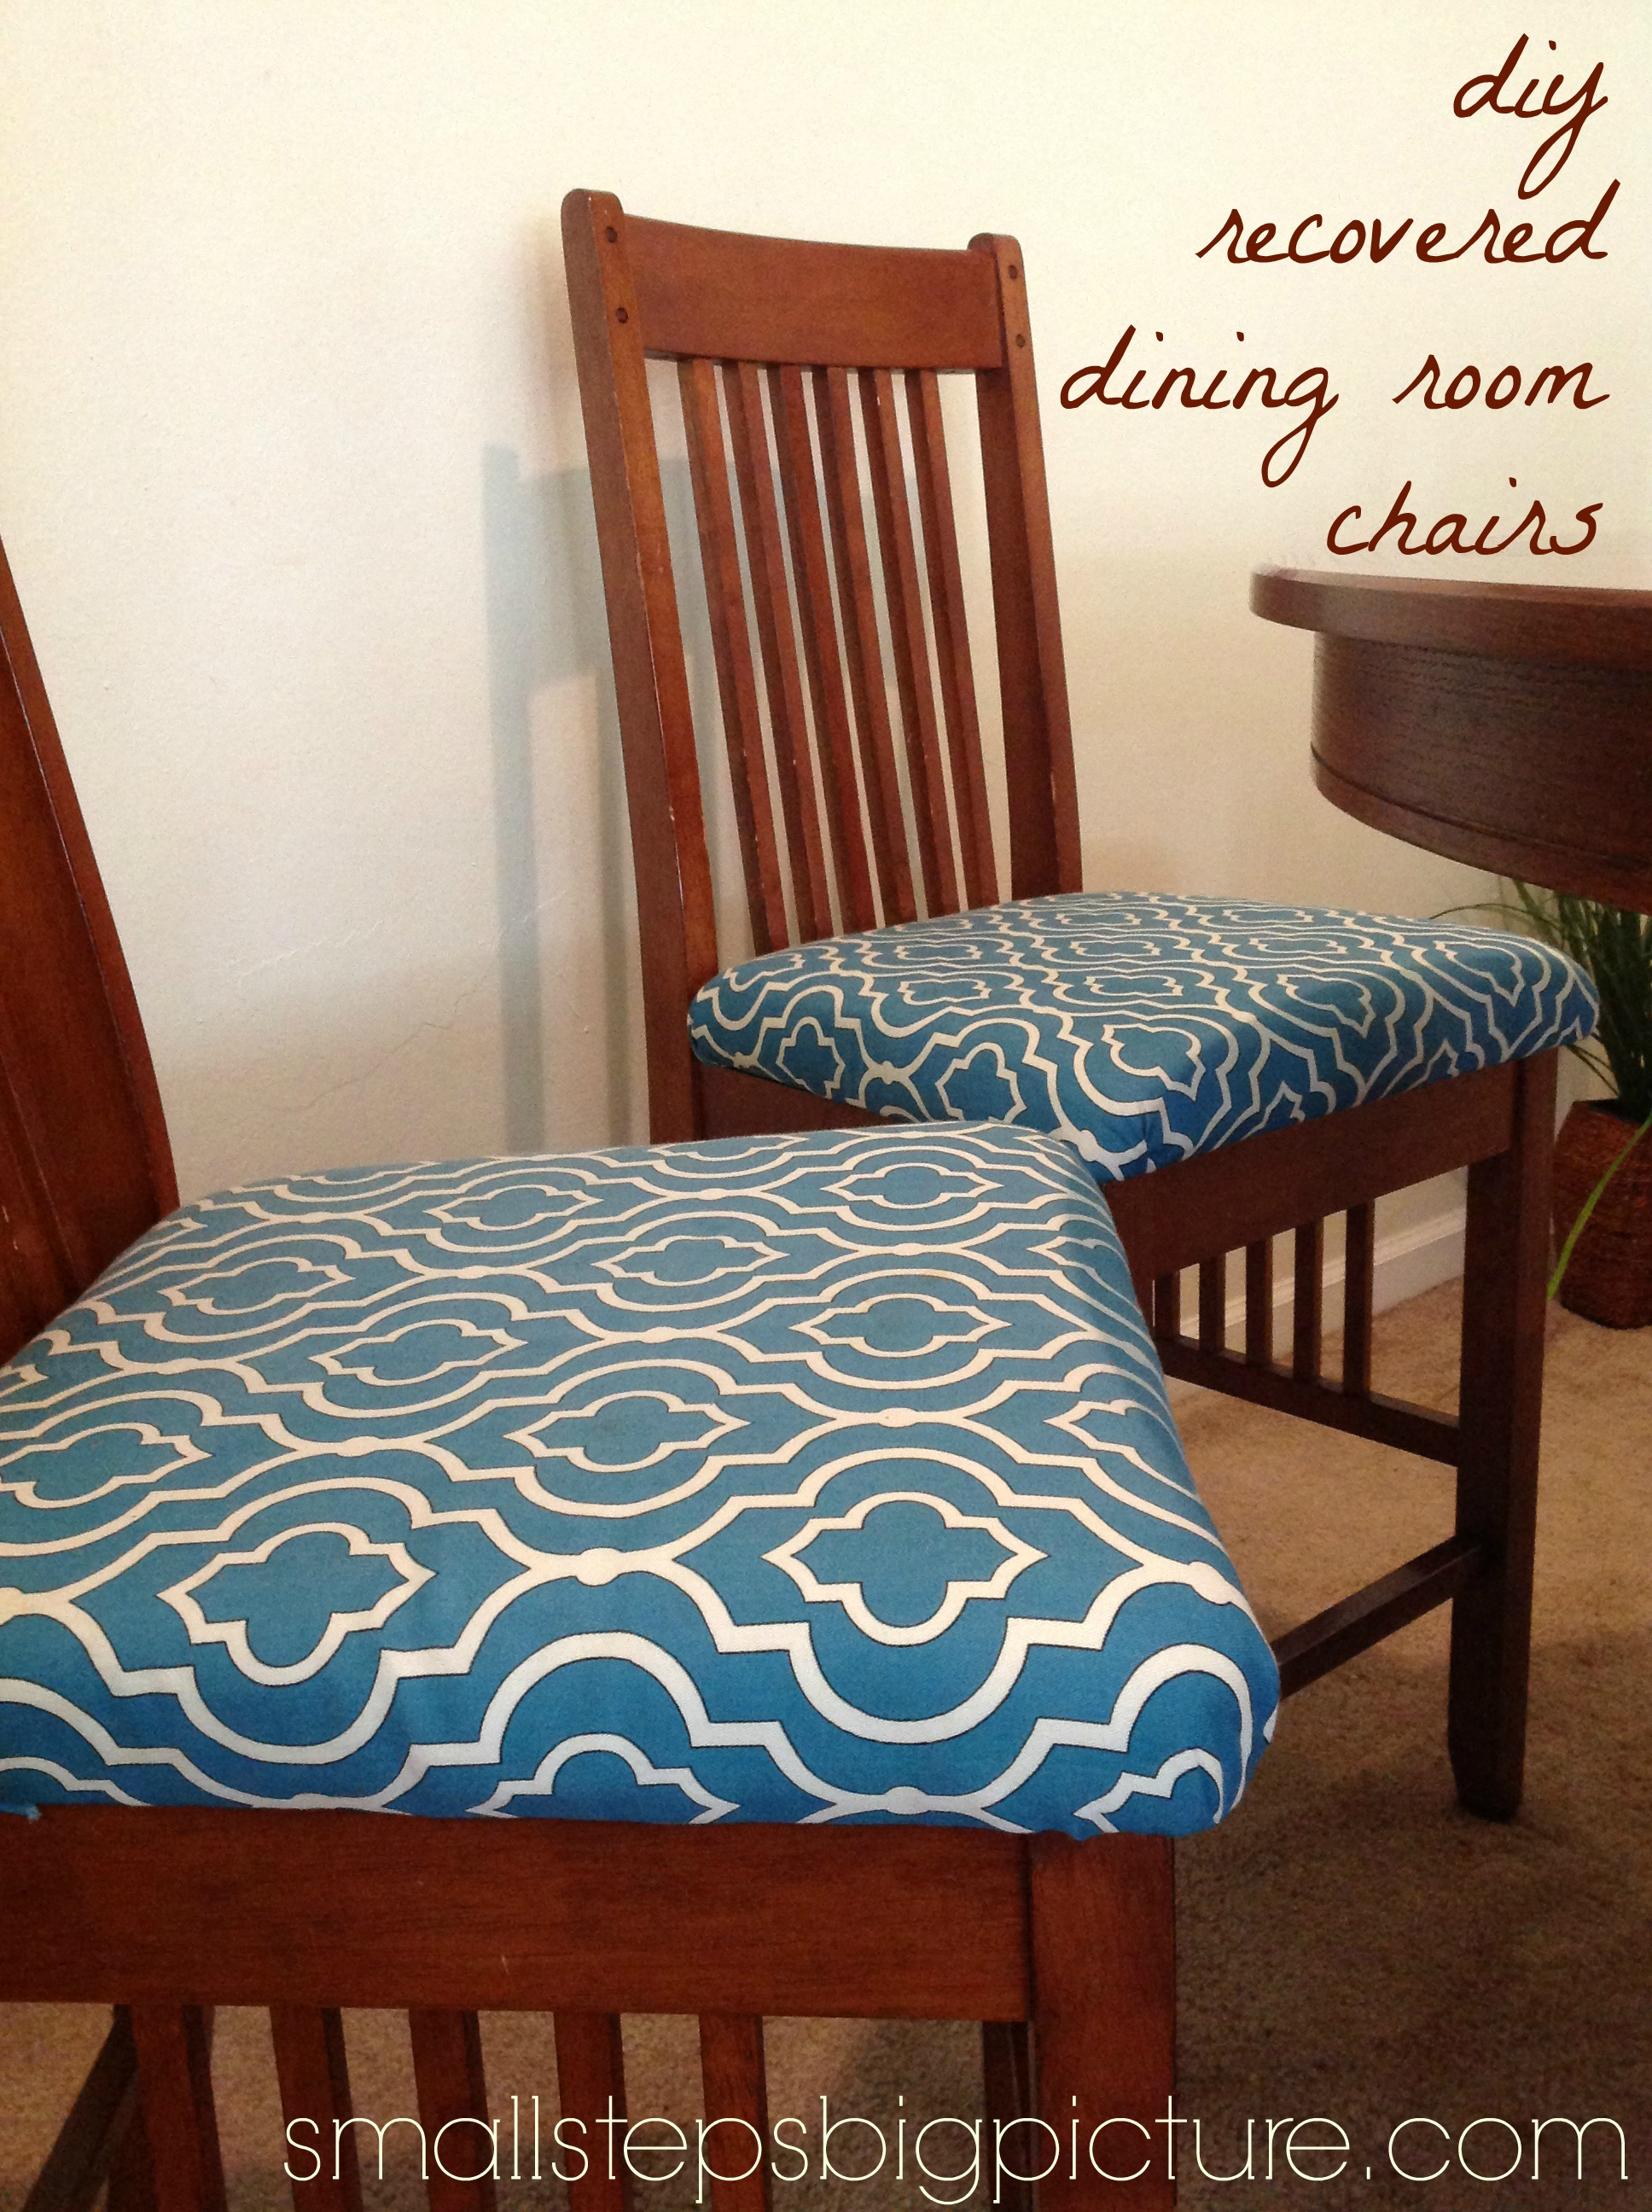 Delightful Diy Recovered Dining Room Chairs